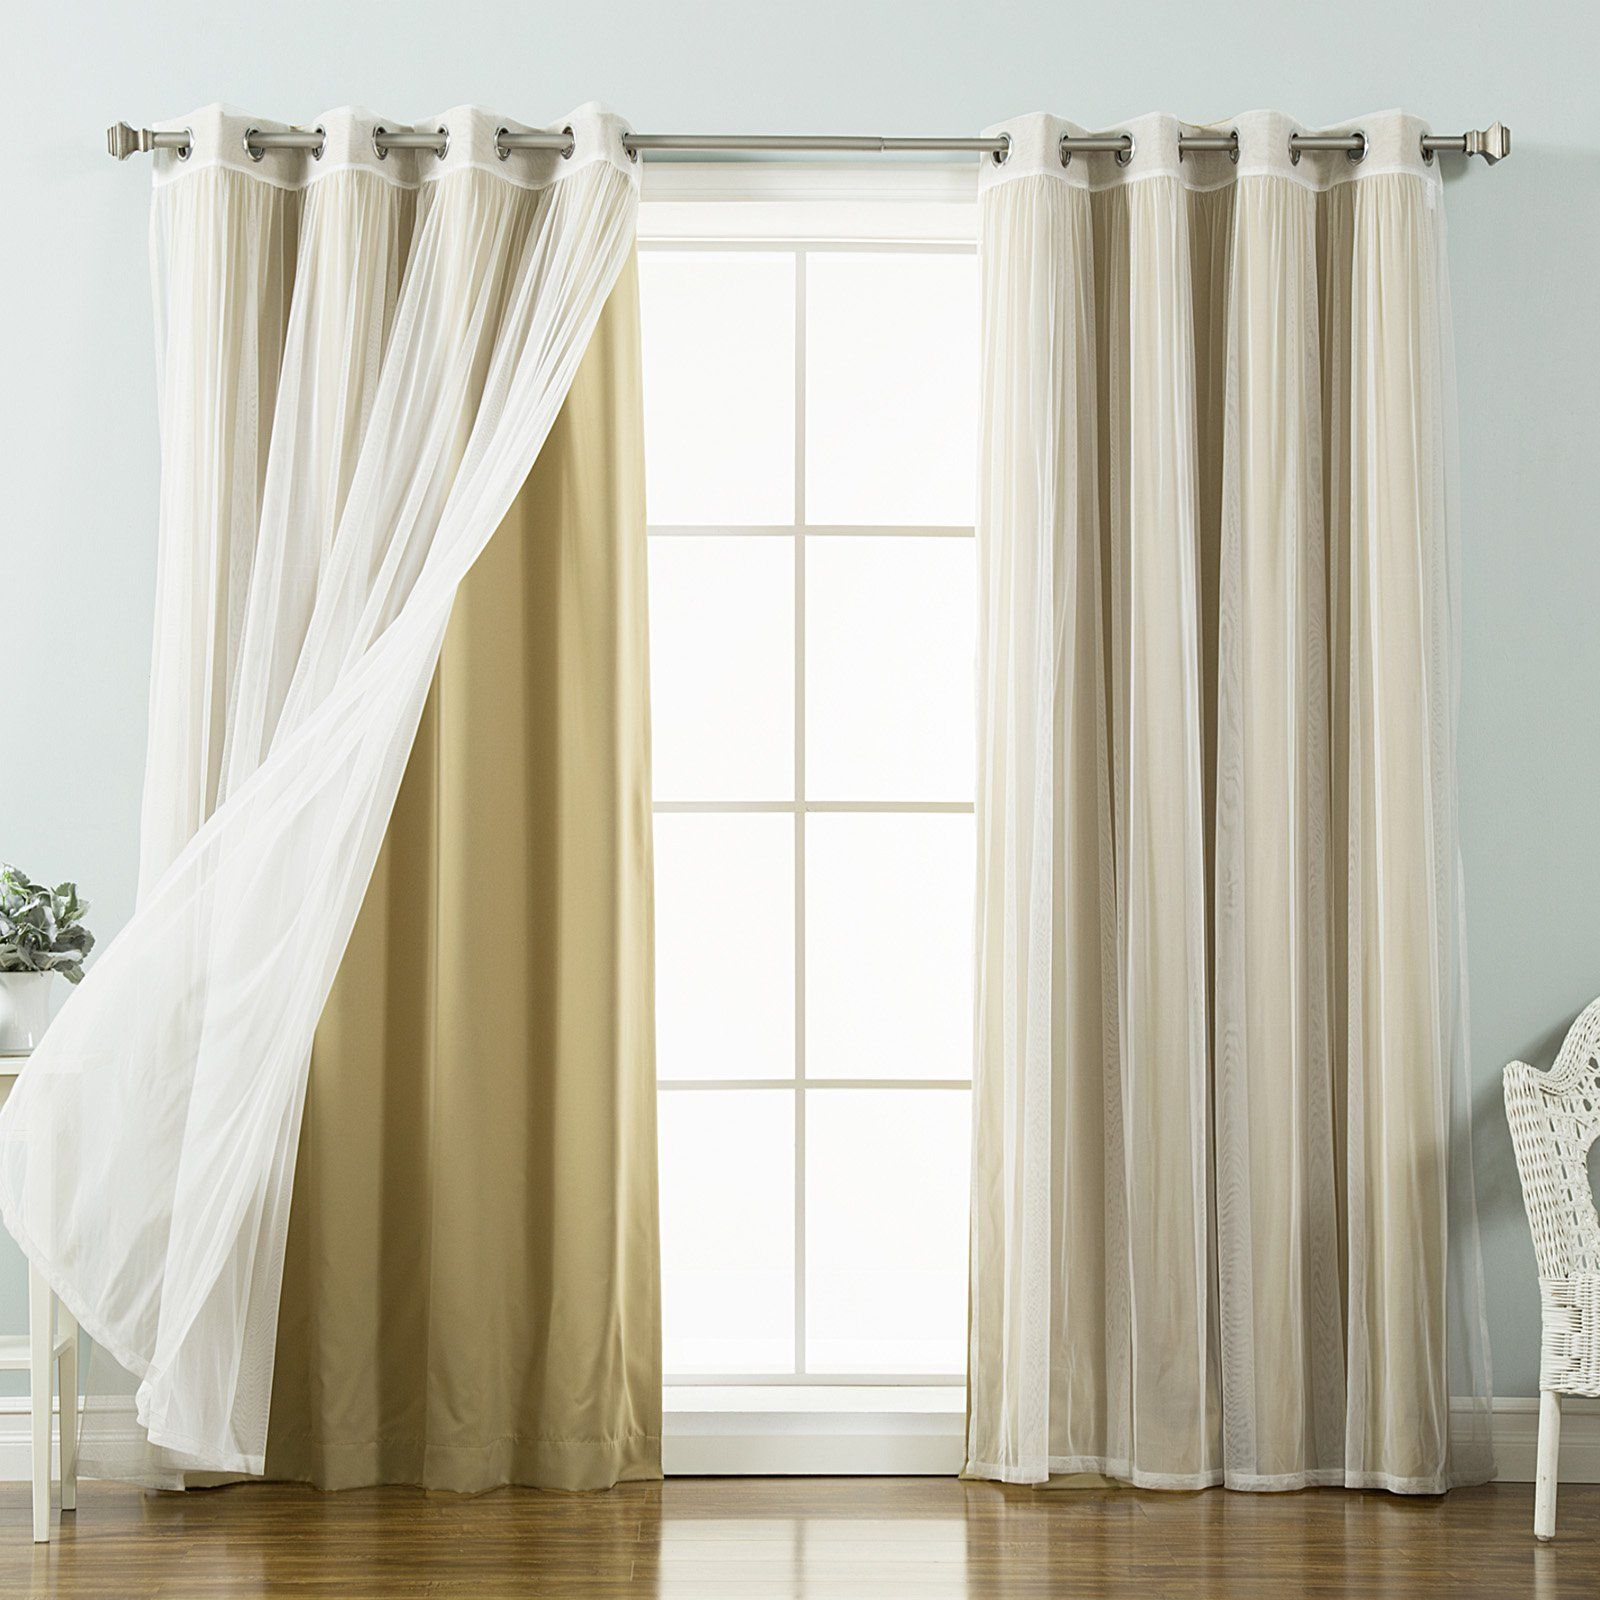 Best Home Fashion Mix Match Tulle Sheer Lace Blackout Curtain